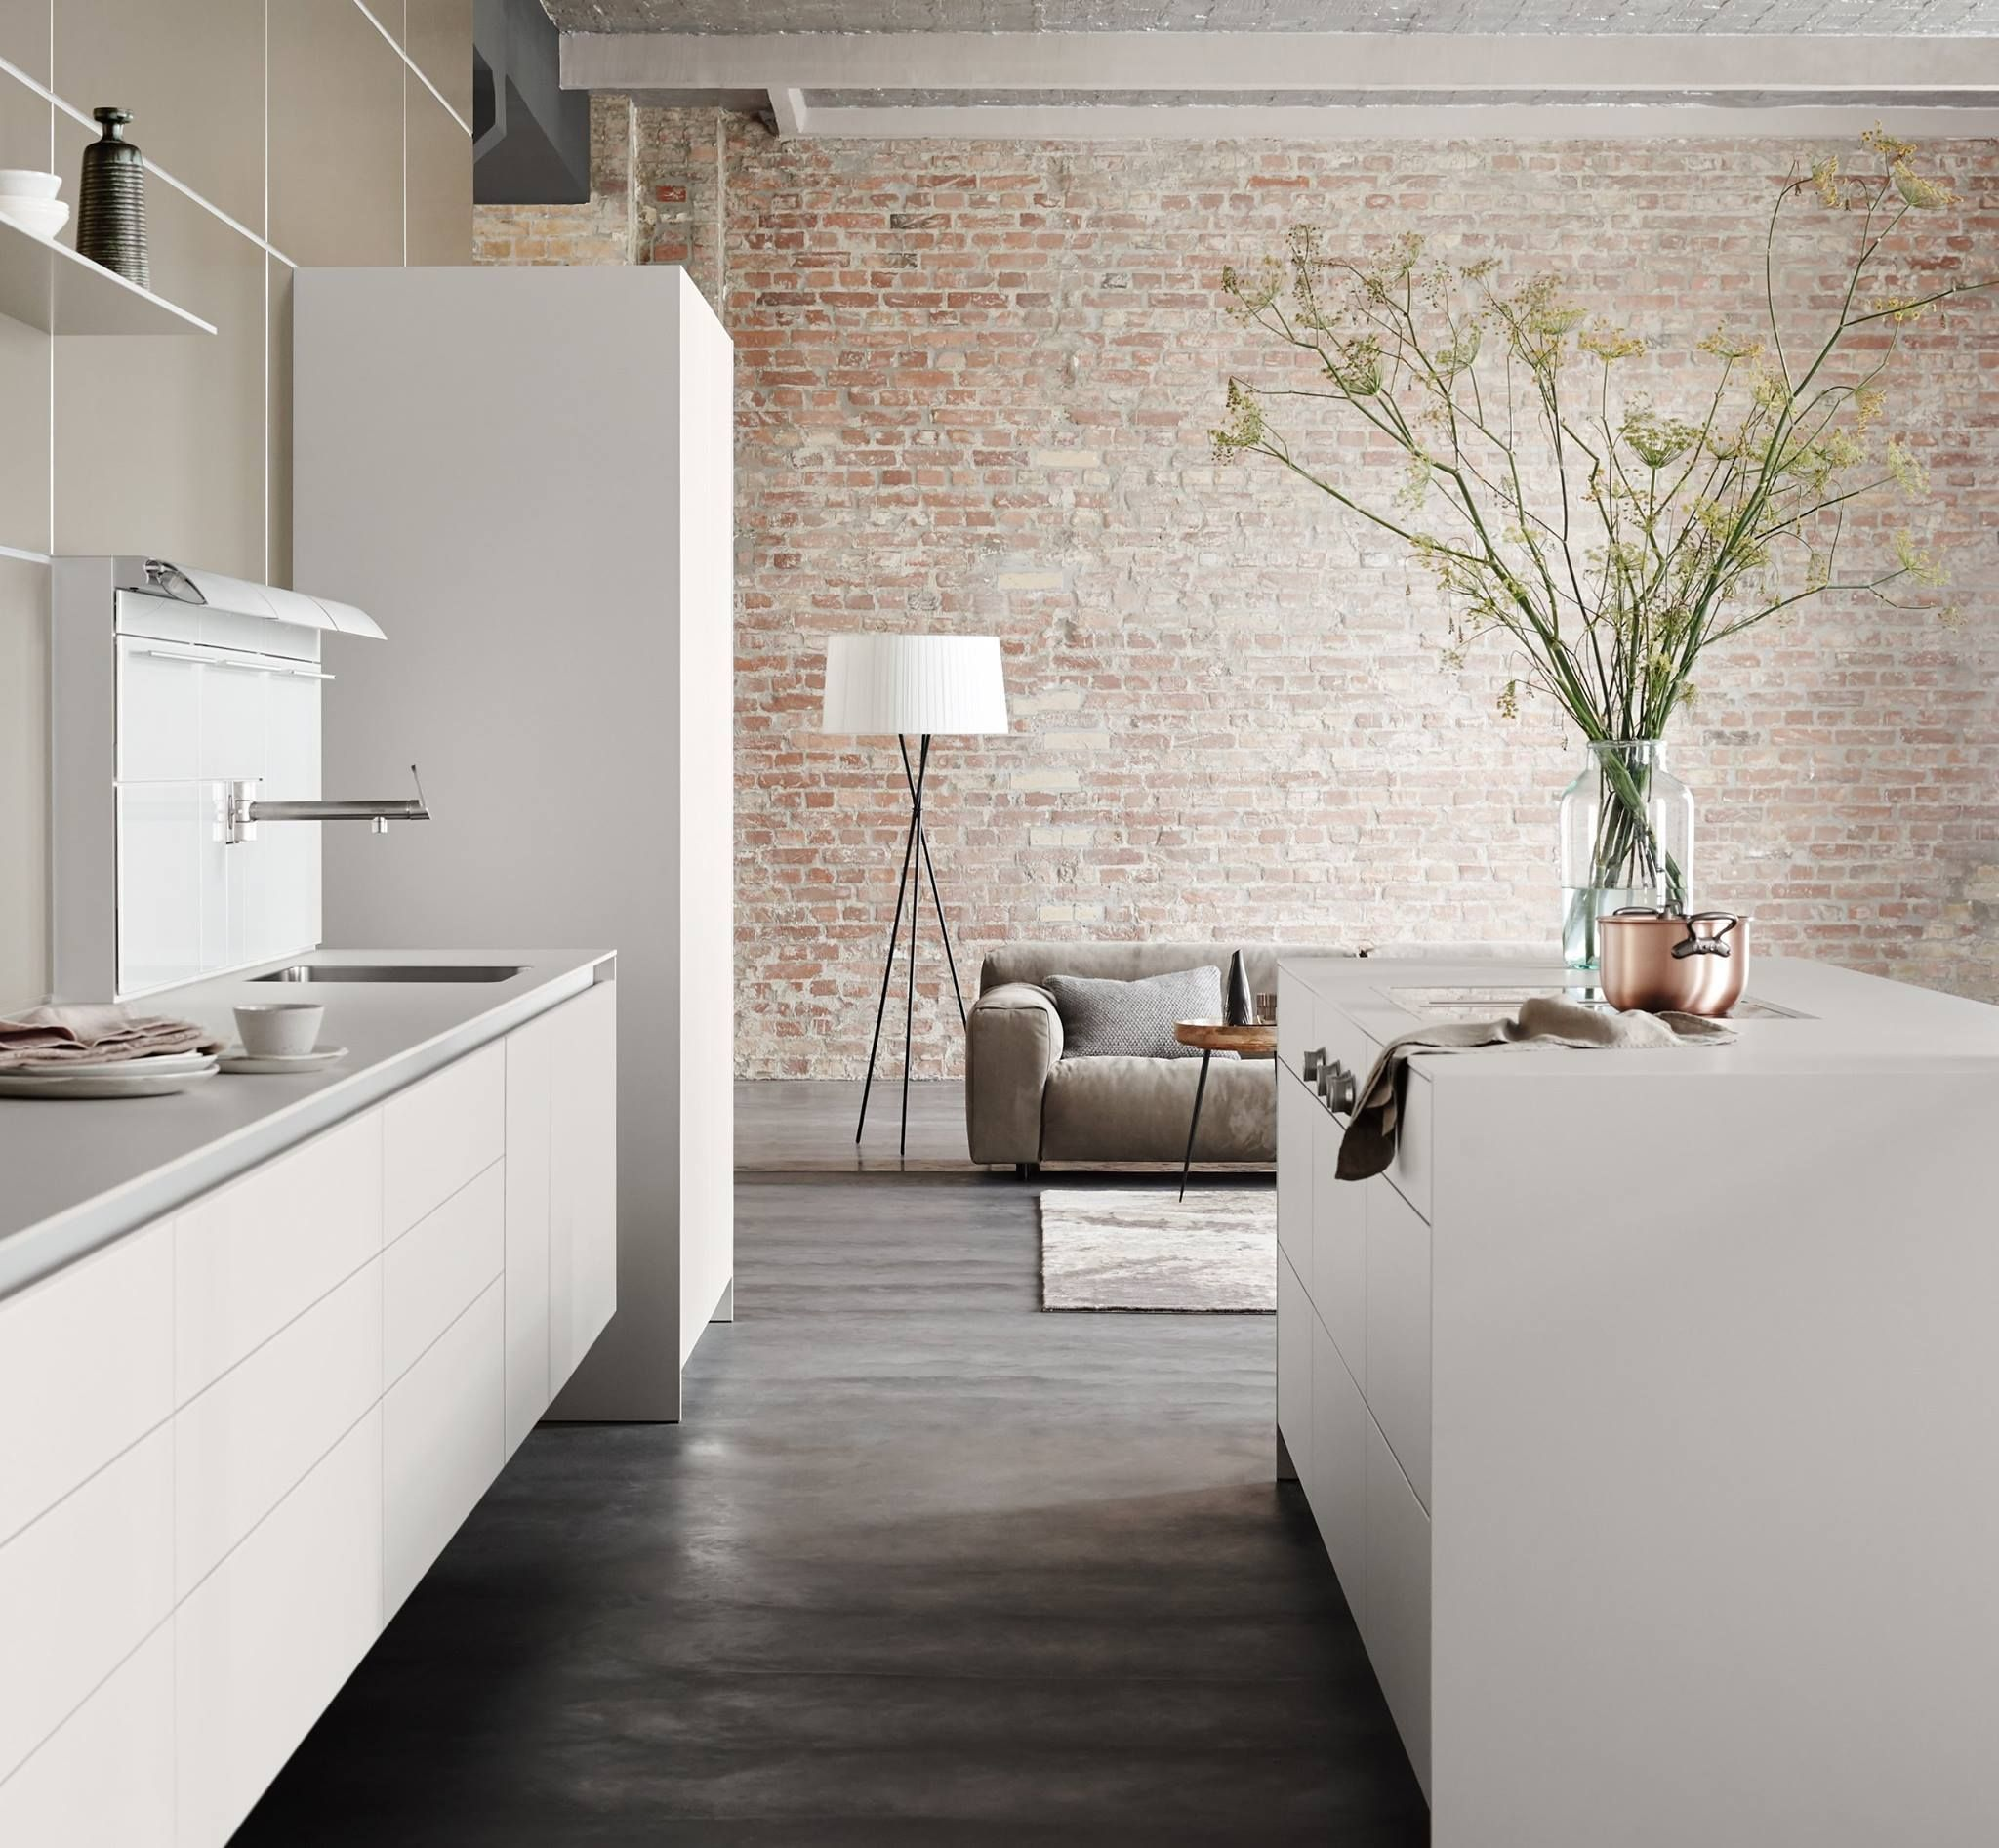 Bulthaup b3 system berlin kitchen pinterest natural for Bulthaup berlin